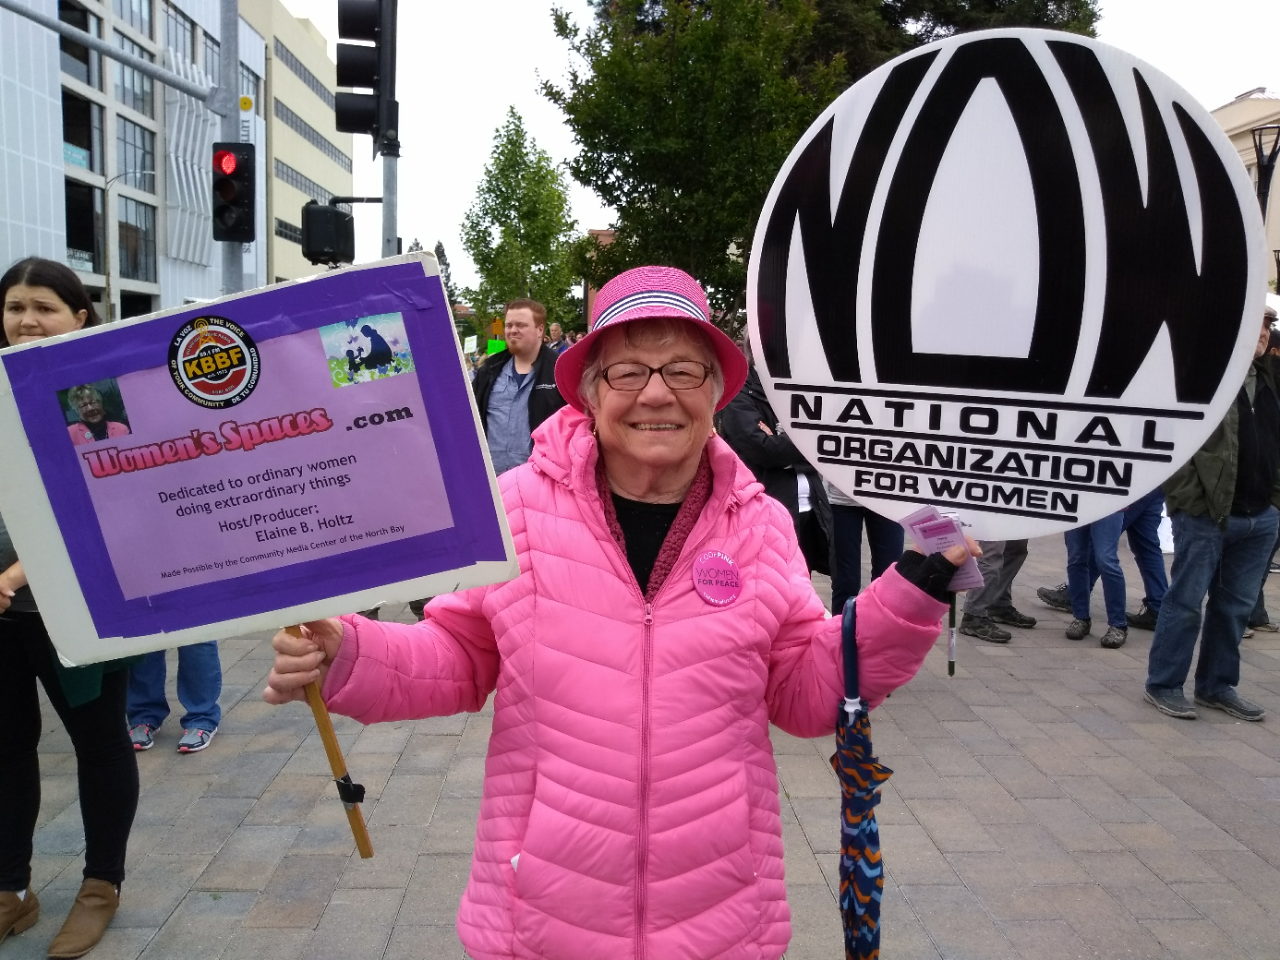 Elaine B. Holtz at the Stop the Bans Rally in Santa Rosa 5/21/2019